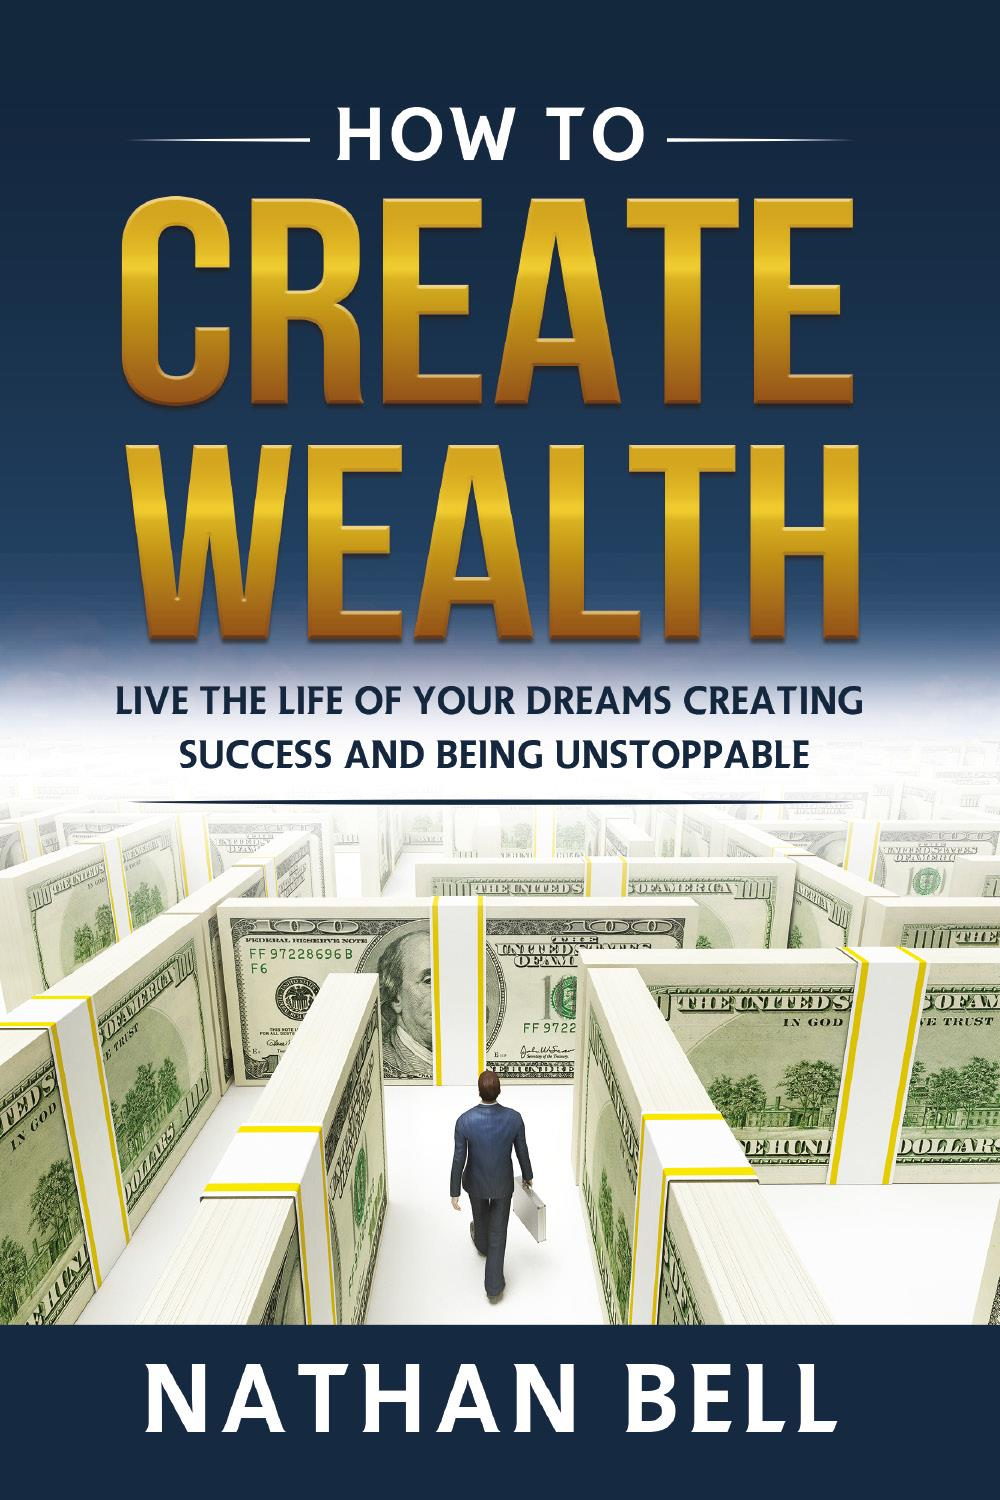 How to Create Wealth. Live the Life of Your Dreams Creating Success and Being Unstoppable